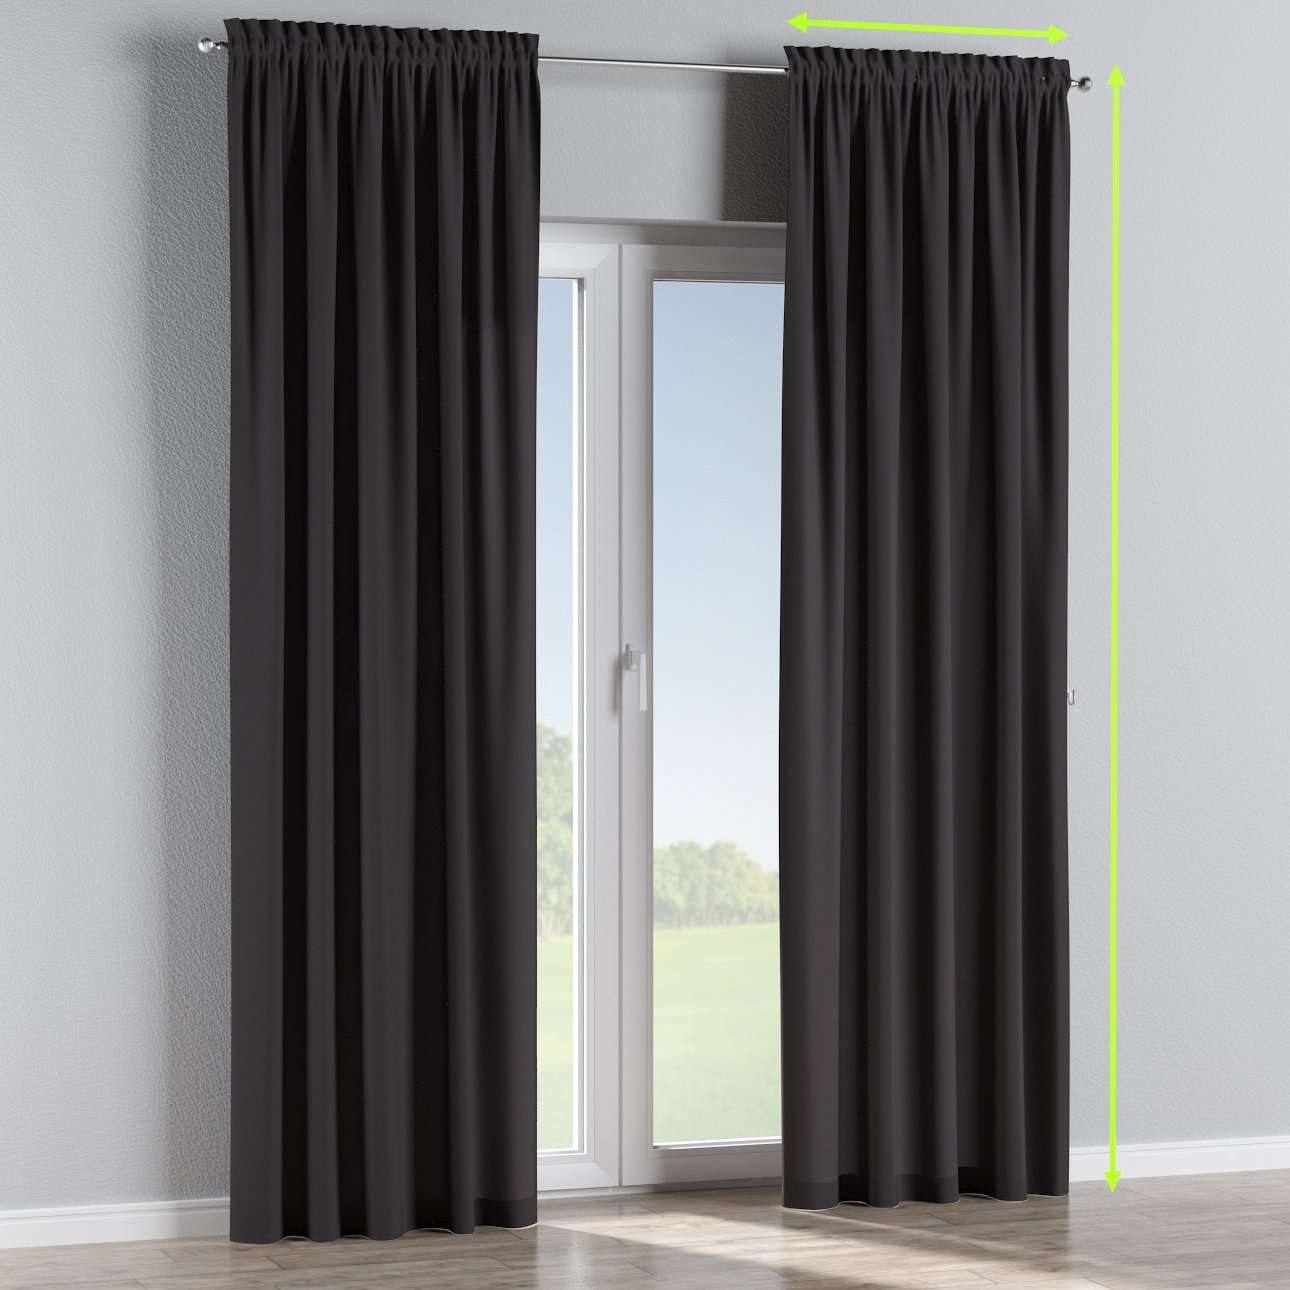 Slot and frill curtains in collection Cotton Panama, fabric: 702-09